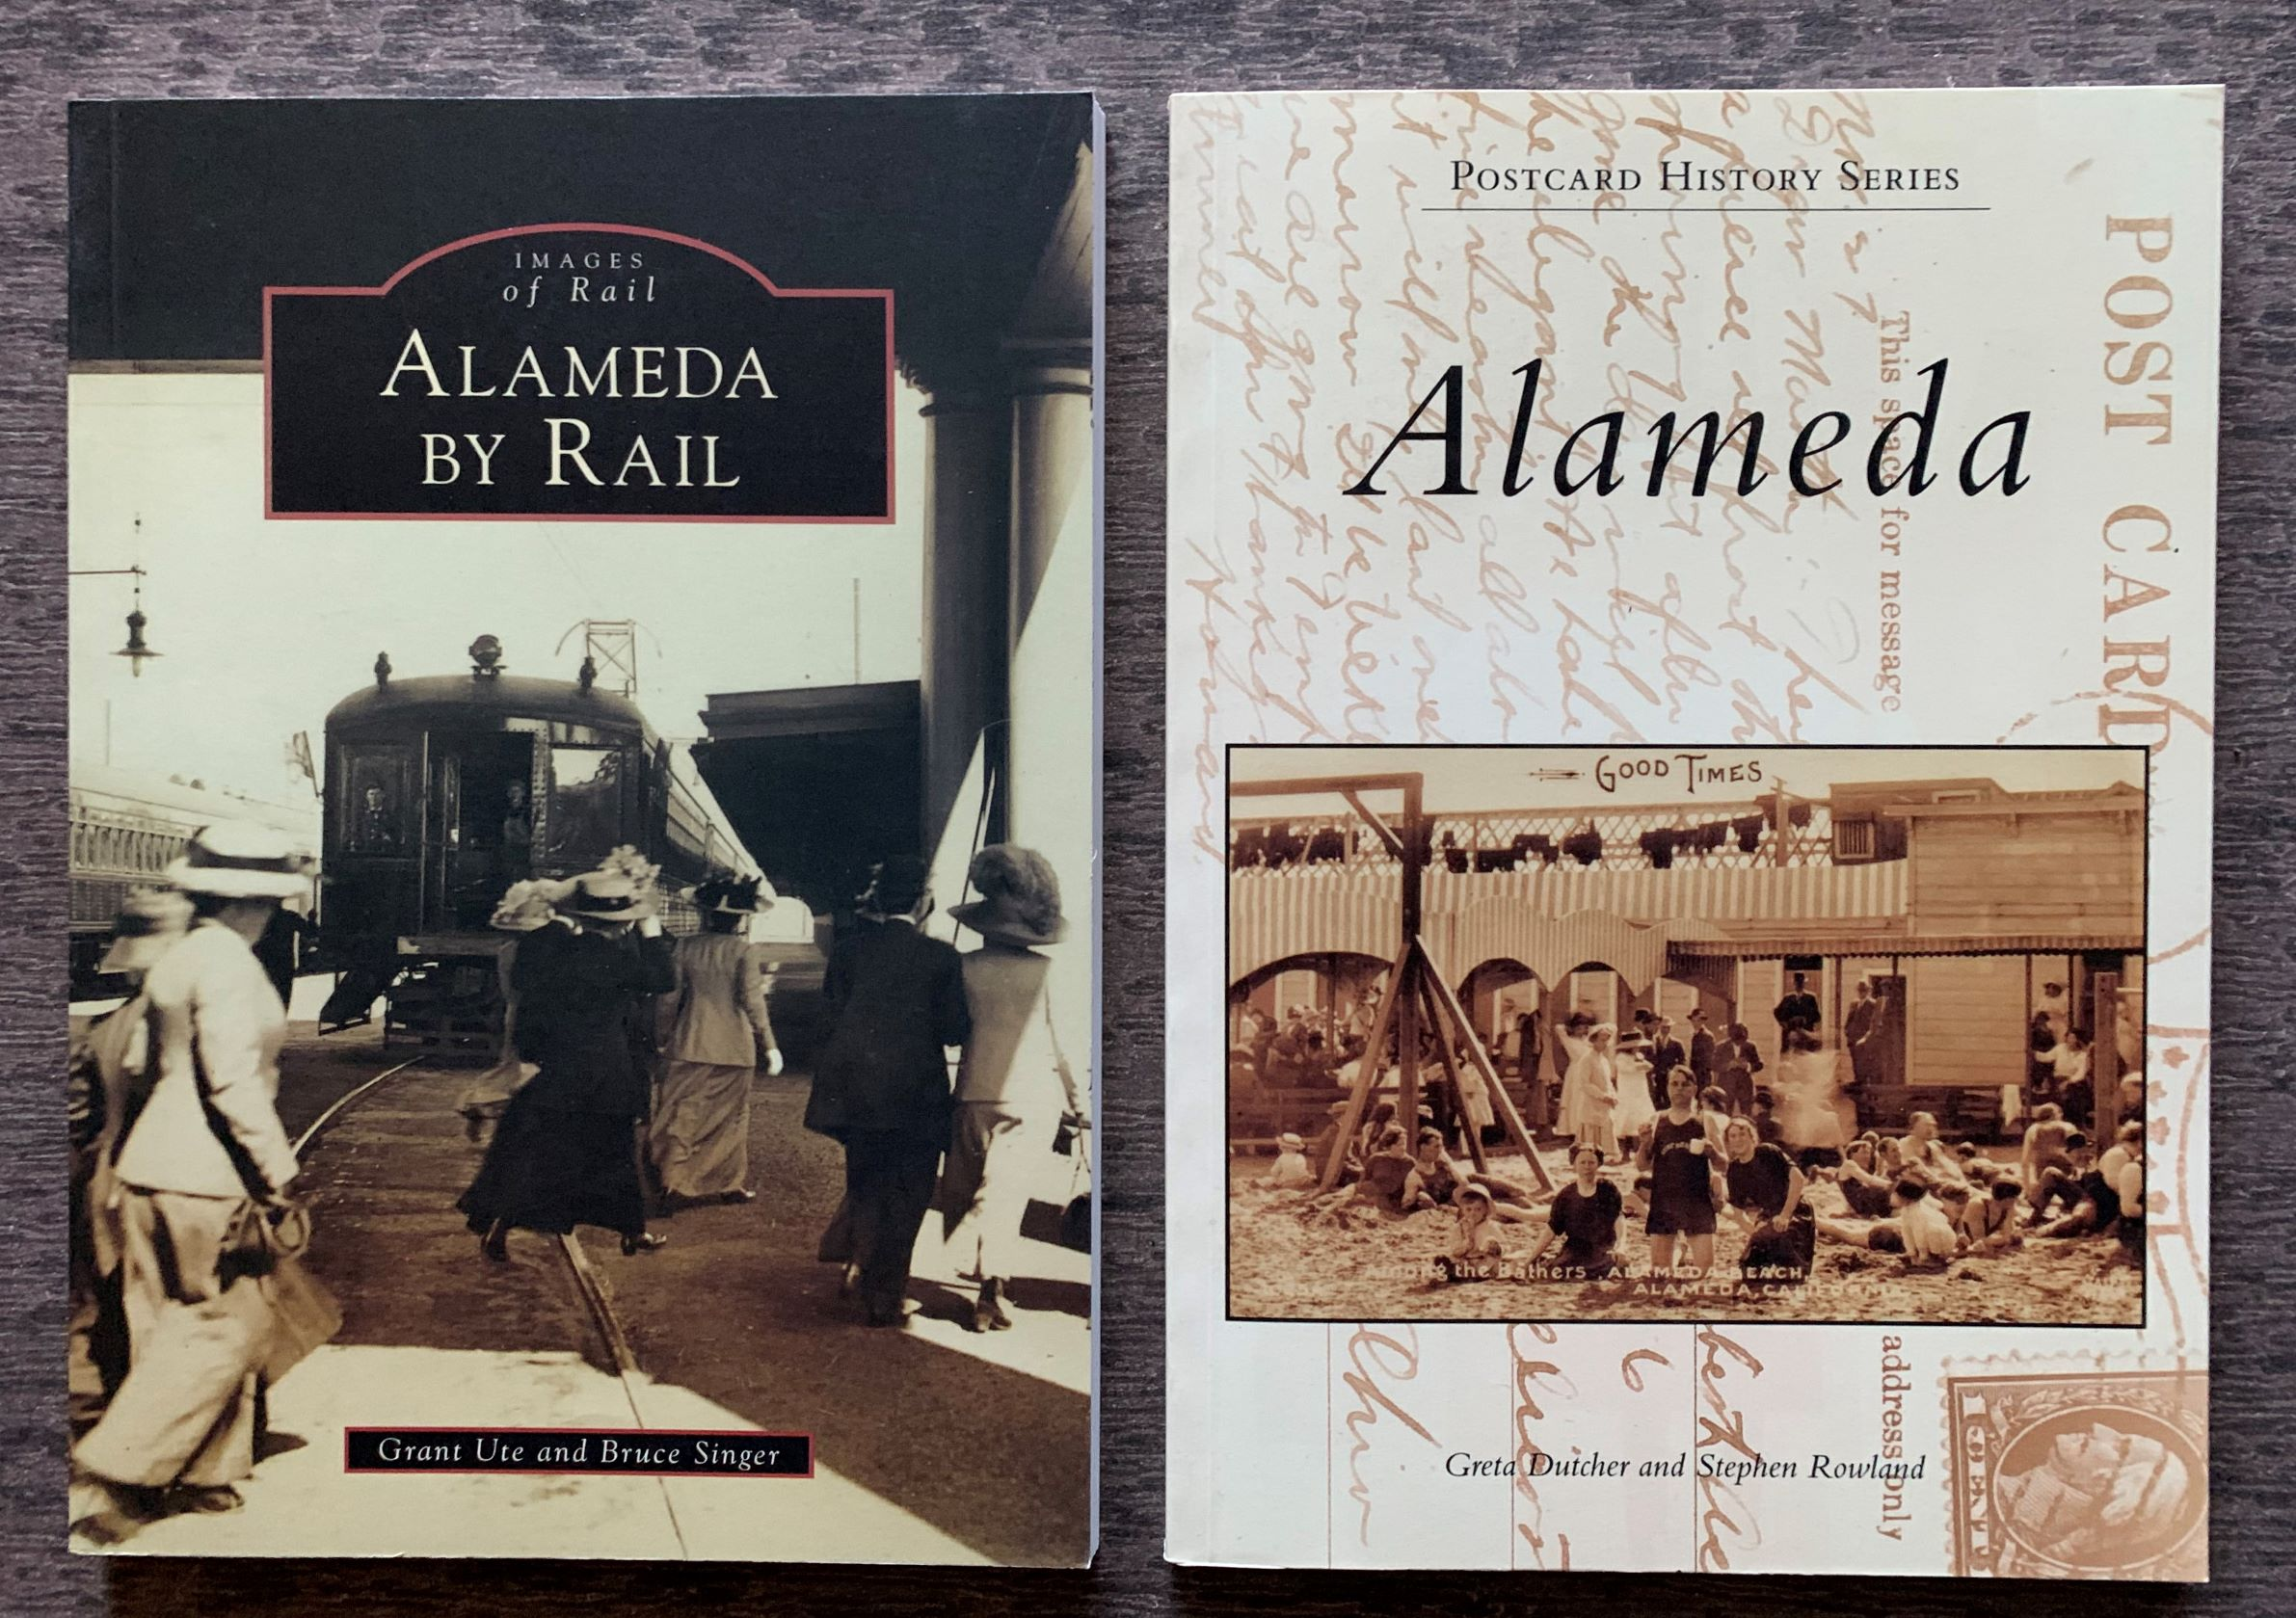 Image for [Two Titles] Post Card History Series, Alameda; together with, Images of Rail Series, Alameda by Rail.